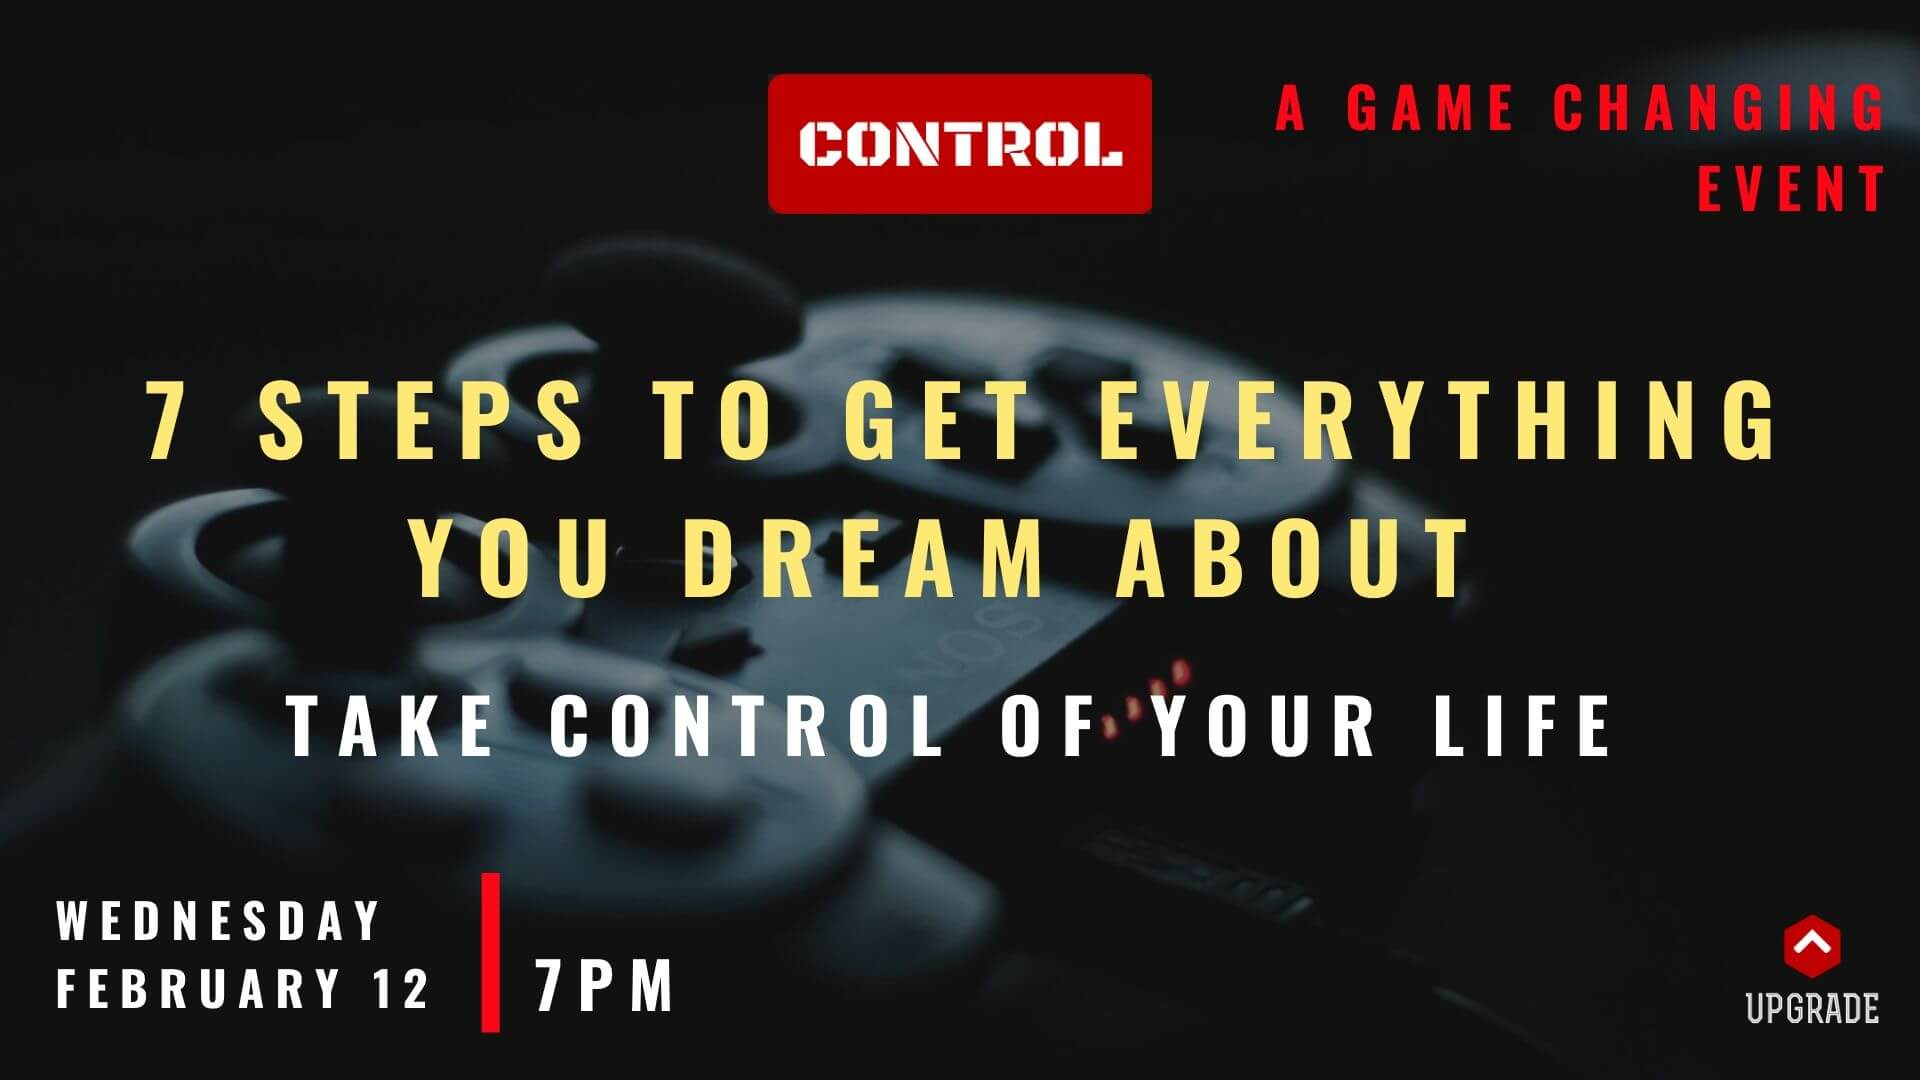 Game Changing Event - CONTROL